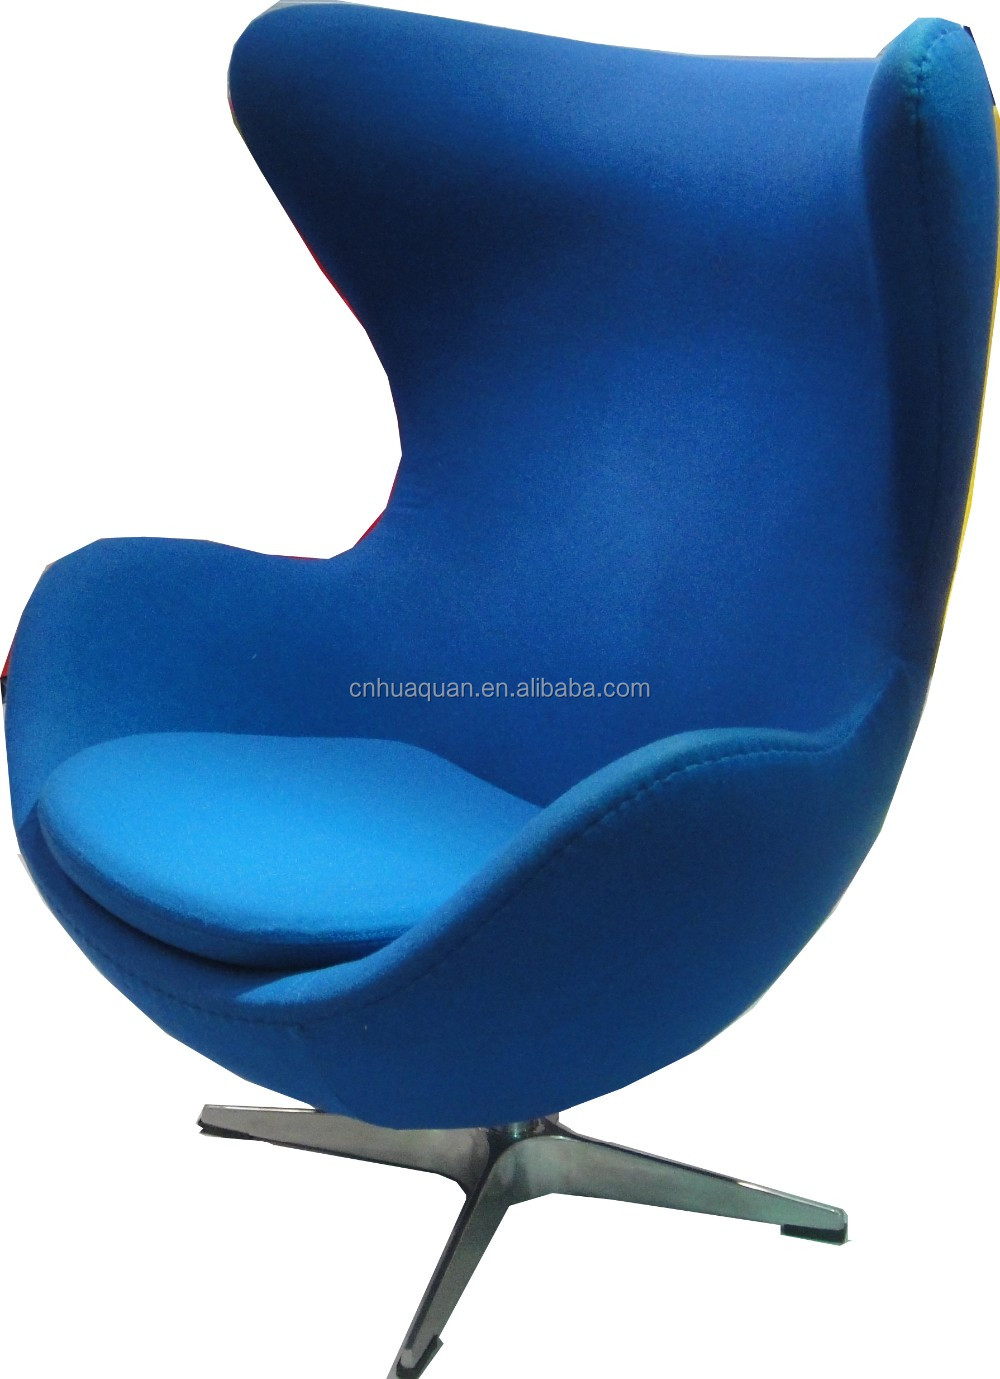 A712#egg shaped chair,fabric leisure chair,office sofa single seat,sofa chair company